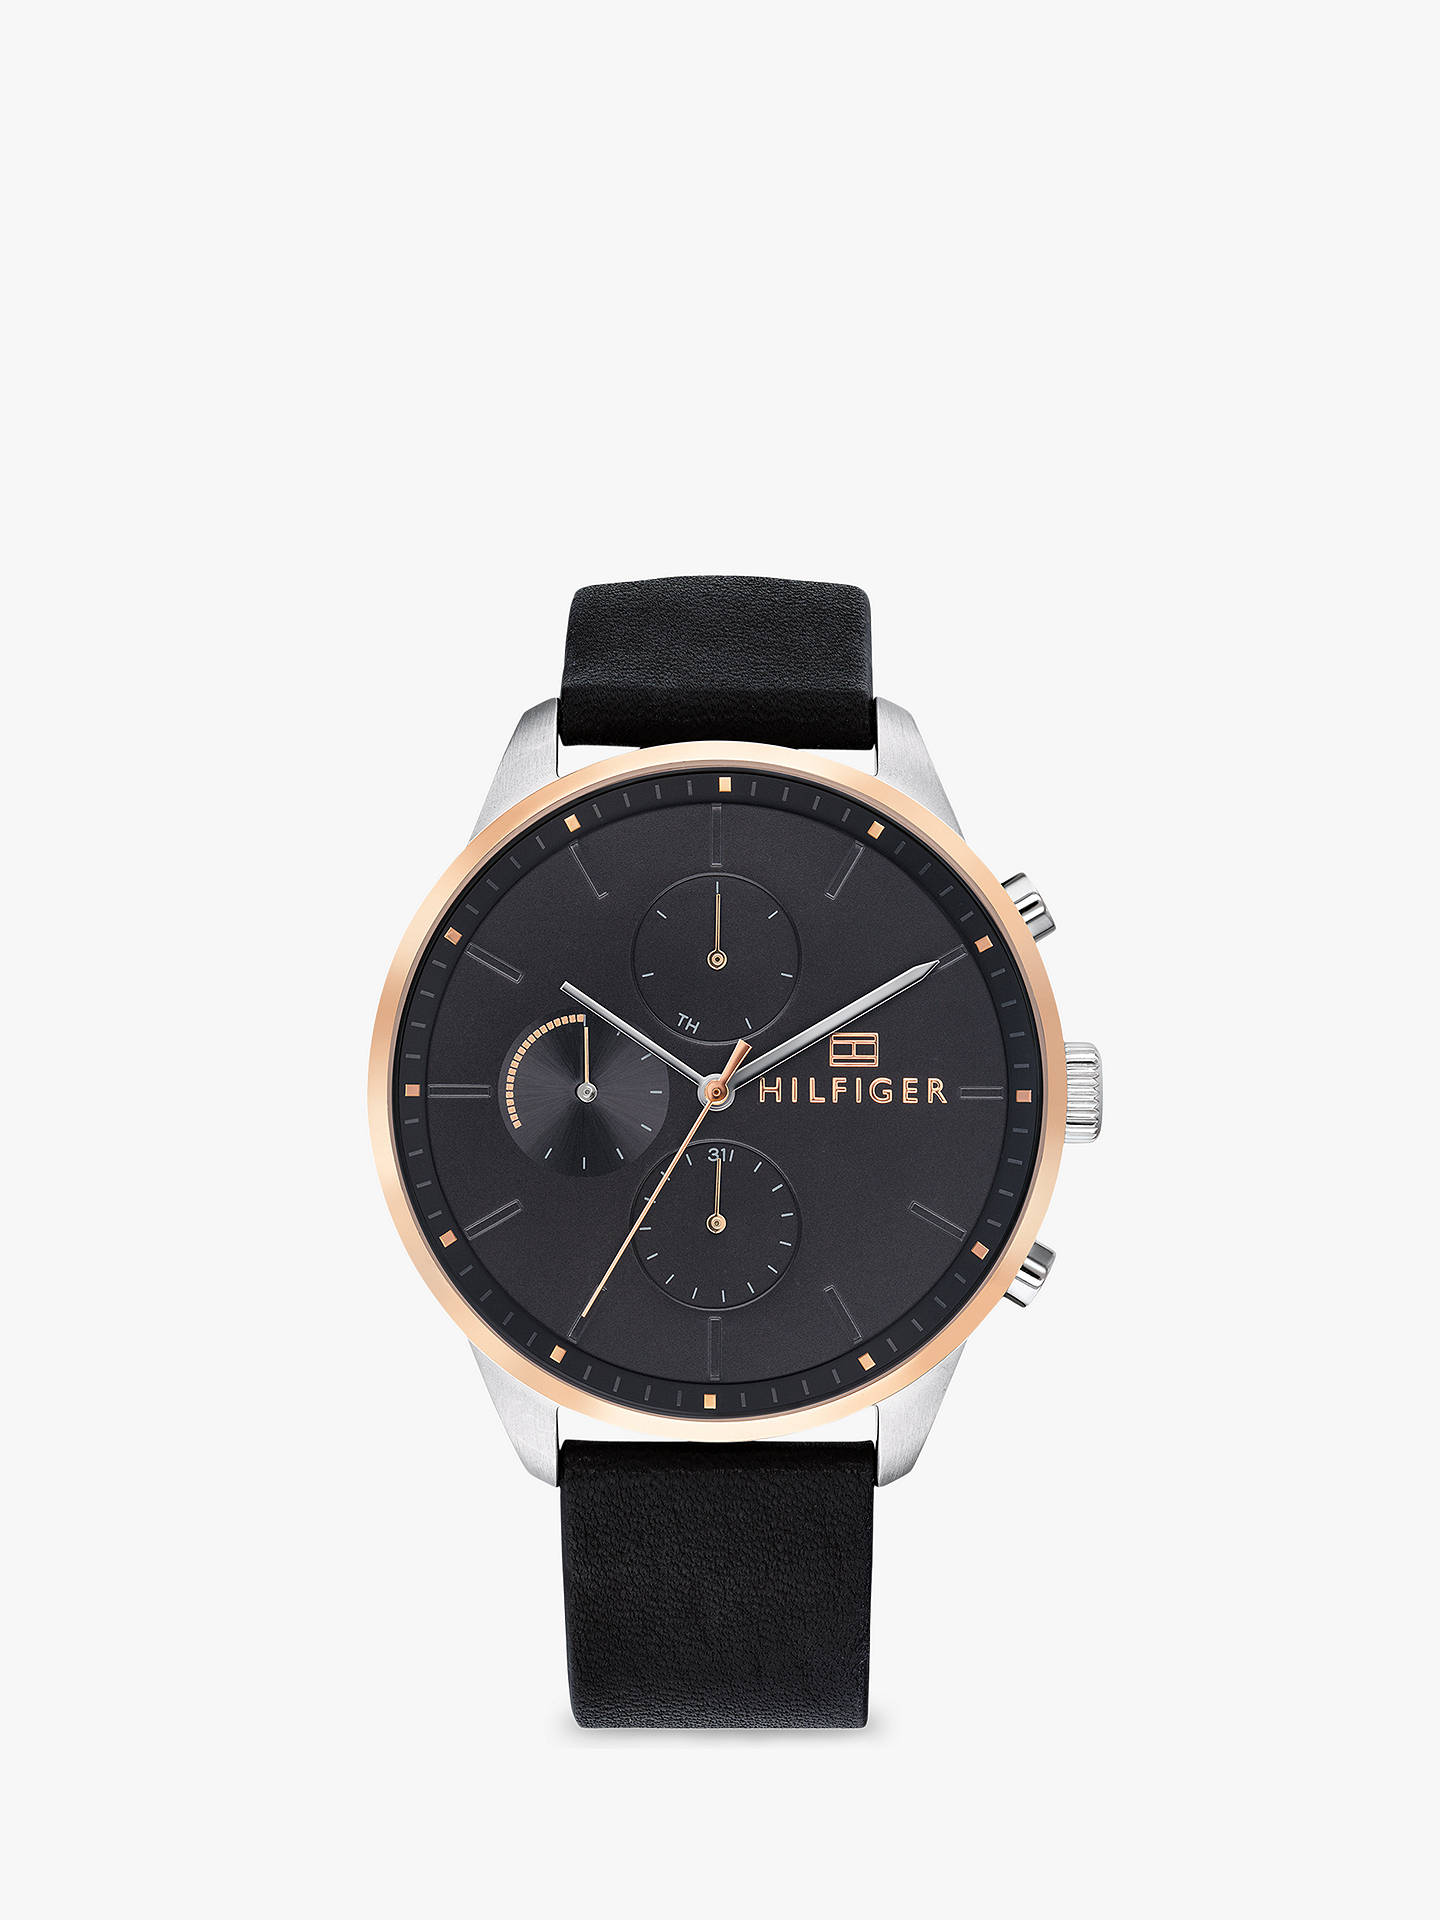 BuyTommy Hilfiger Men s Chase Chronograph Leather Strap Watch, Black  1791488 Online at johnlewis.com 704d180fe6